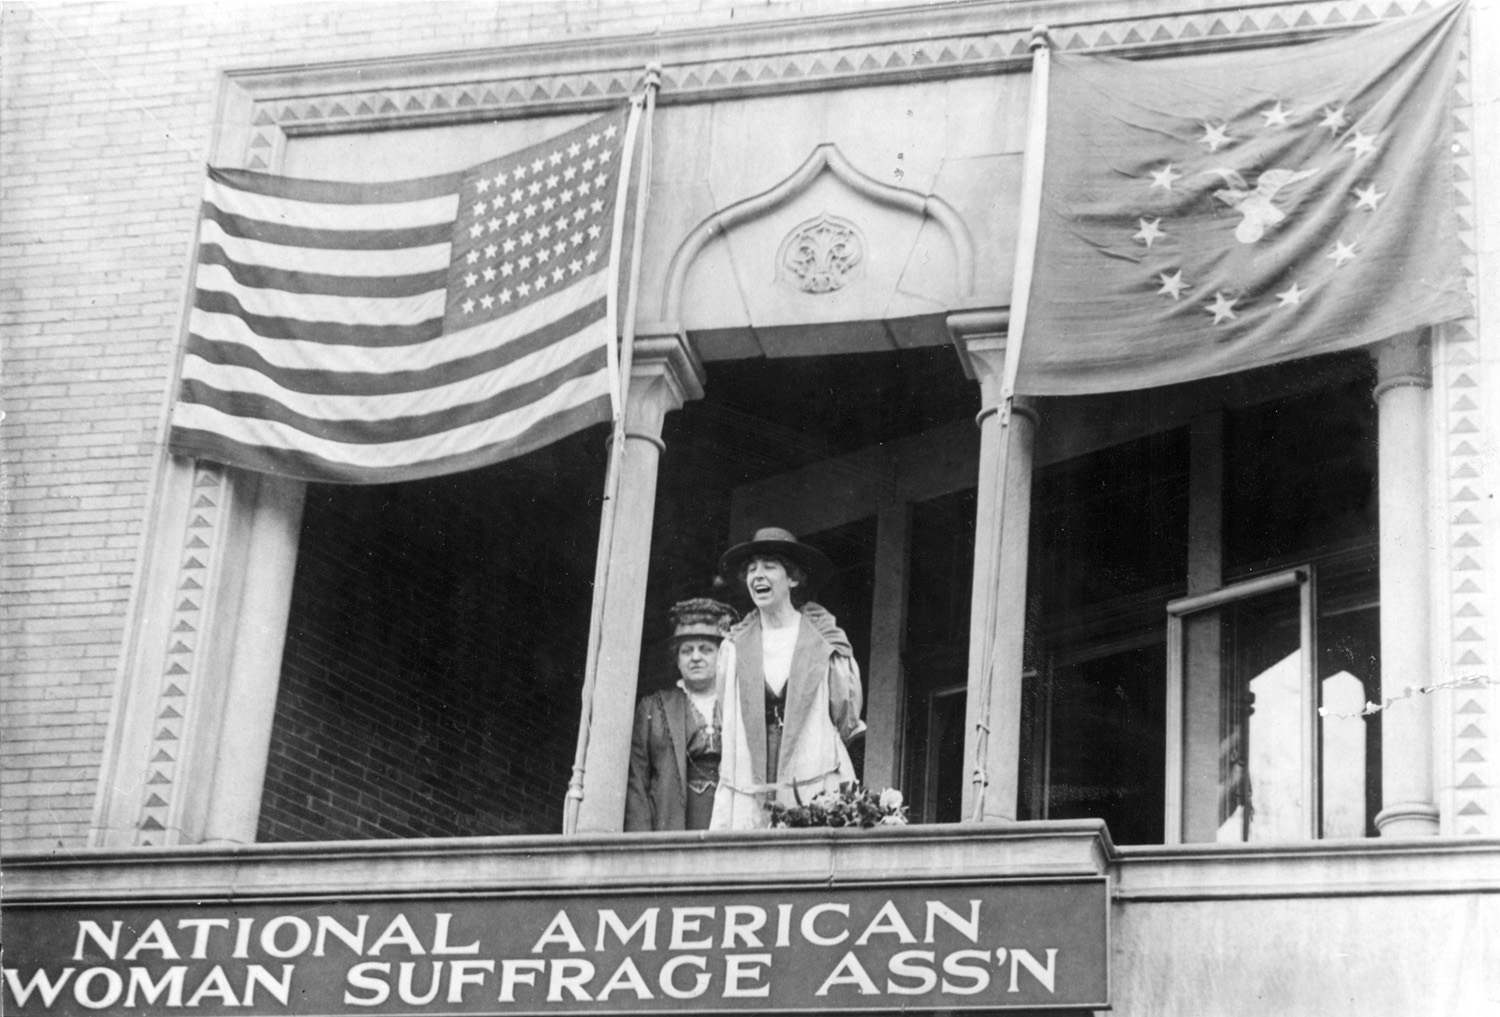 thesis on womens suffrage Although american and british women have been considered leaders in worldwide women's suffrage, women's political participation in the united states is rather lackluster, with just 55 percent voting in primary elections in 1992 and women holding just 17 percent of us legislative seats.